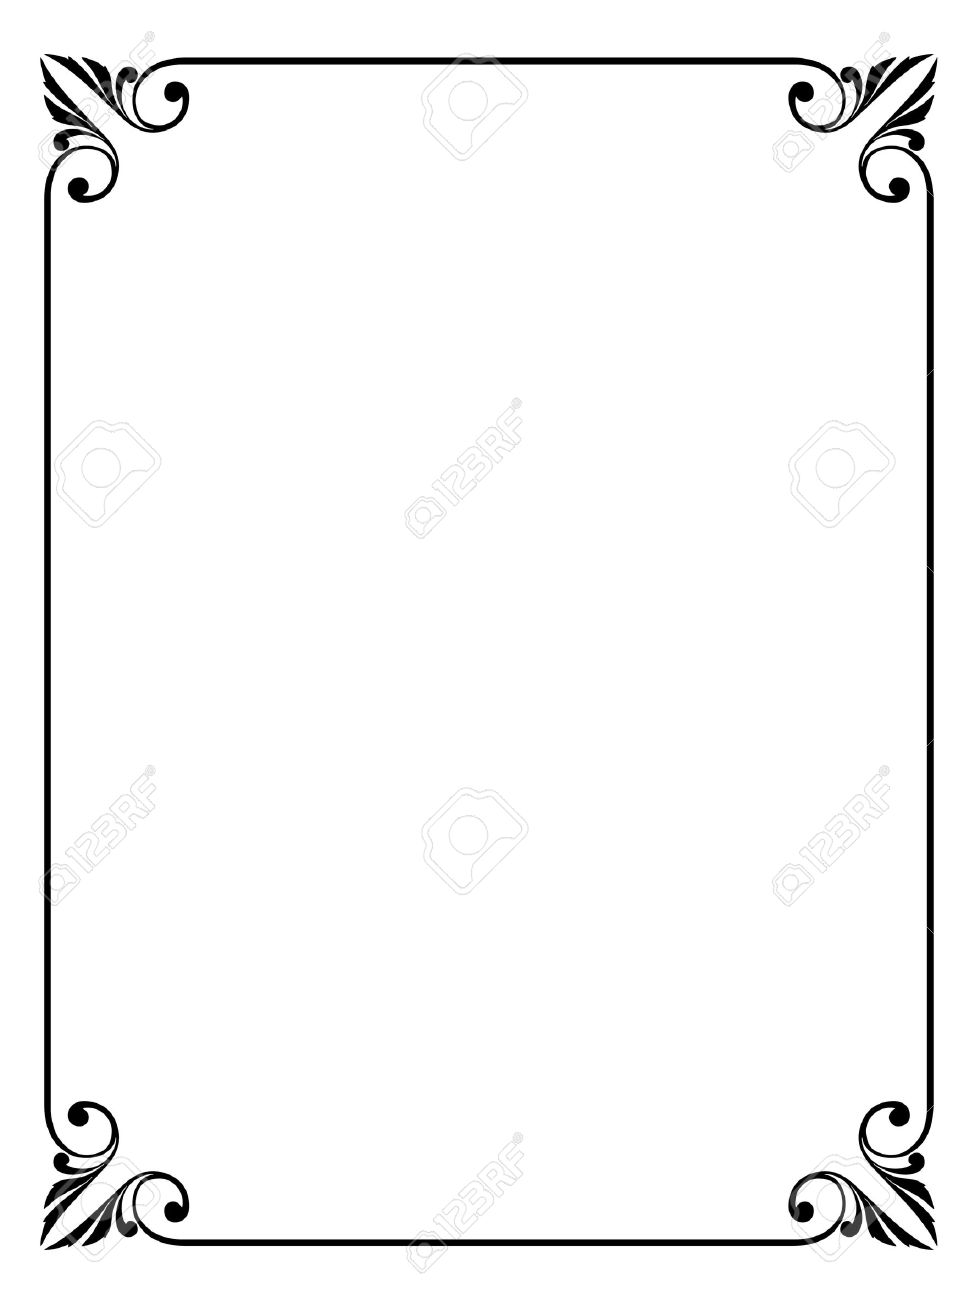 vector simple calligraphy ornamental decorative frame pattern